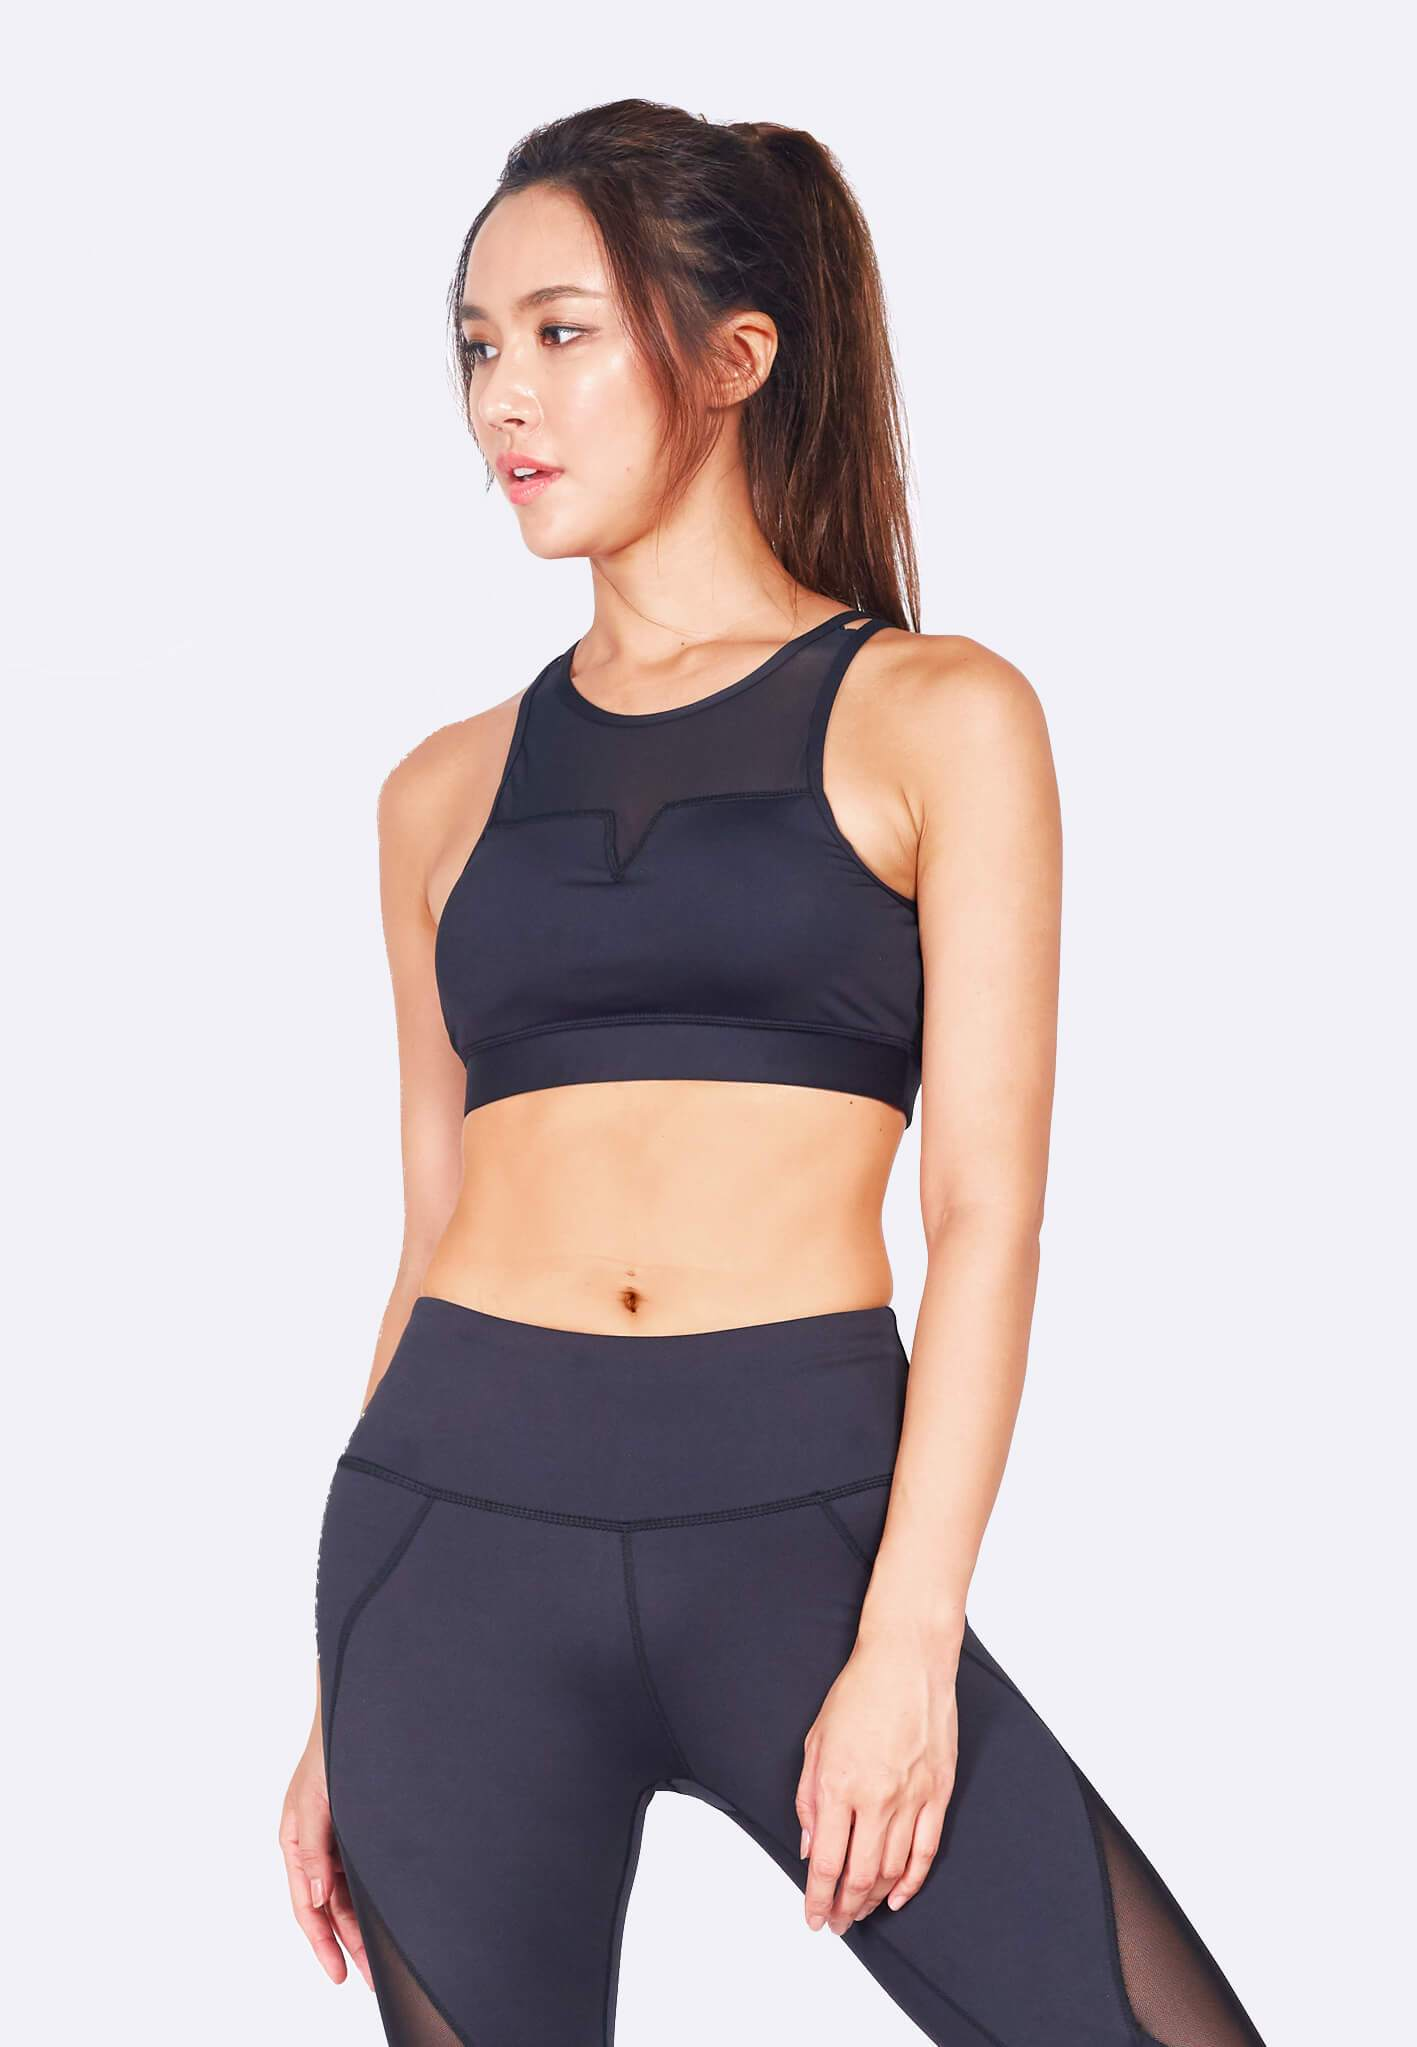 FUNFIT Revival Crossback Sports Bra (Black) | S - 3XL